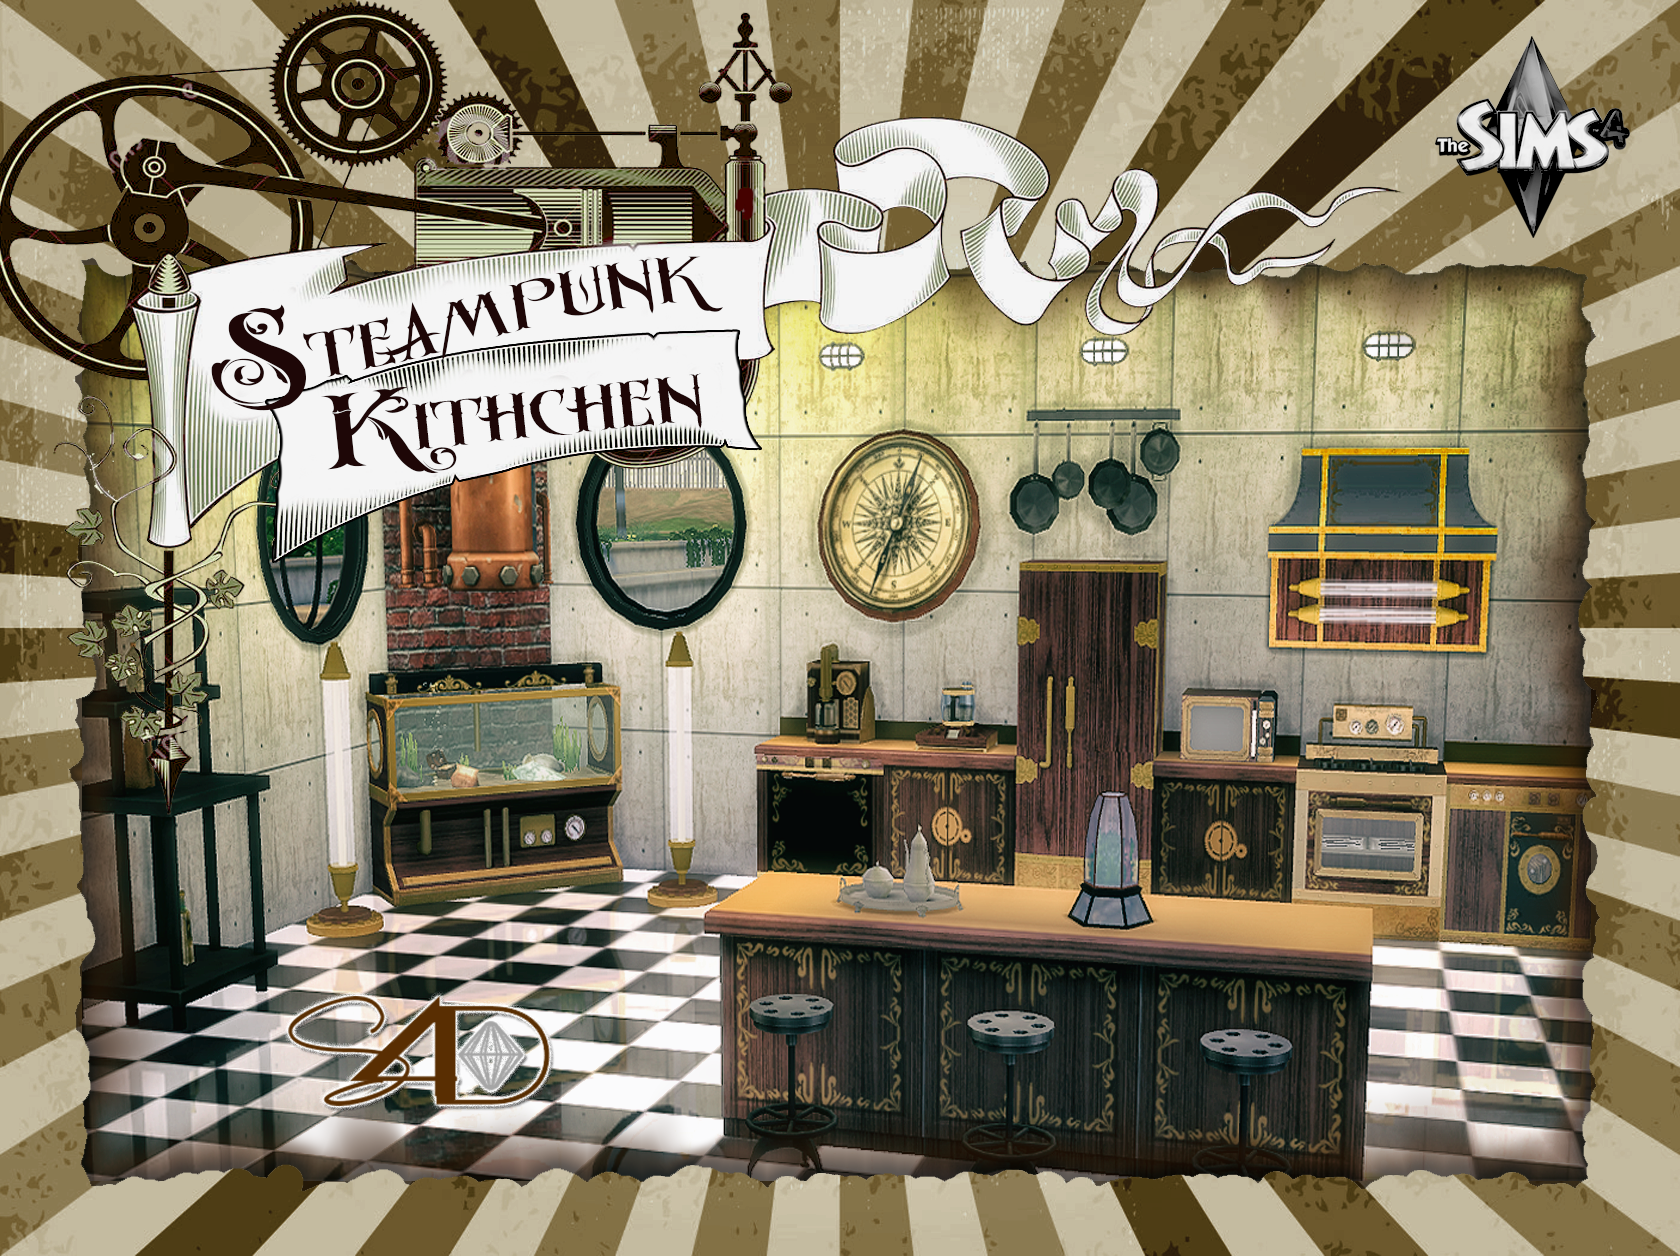 Ts3 To Ts4 Steampunk Kitchen - Sims 4 Designs